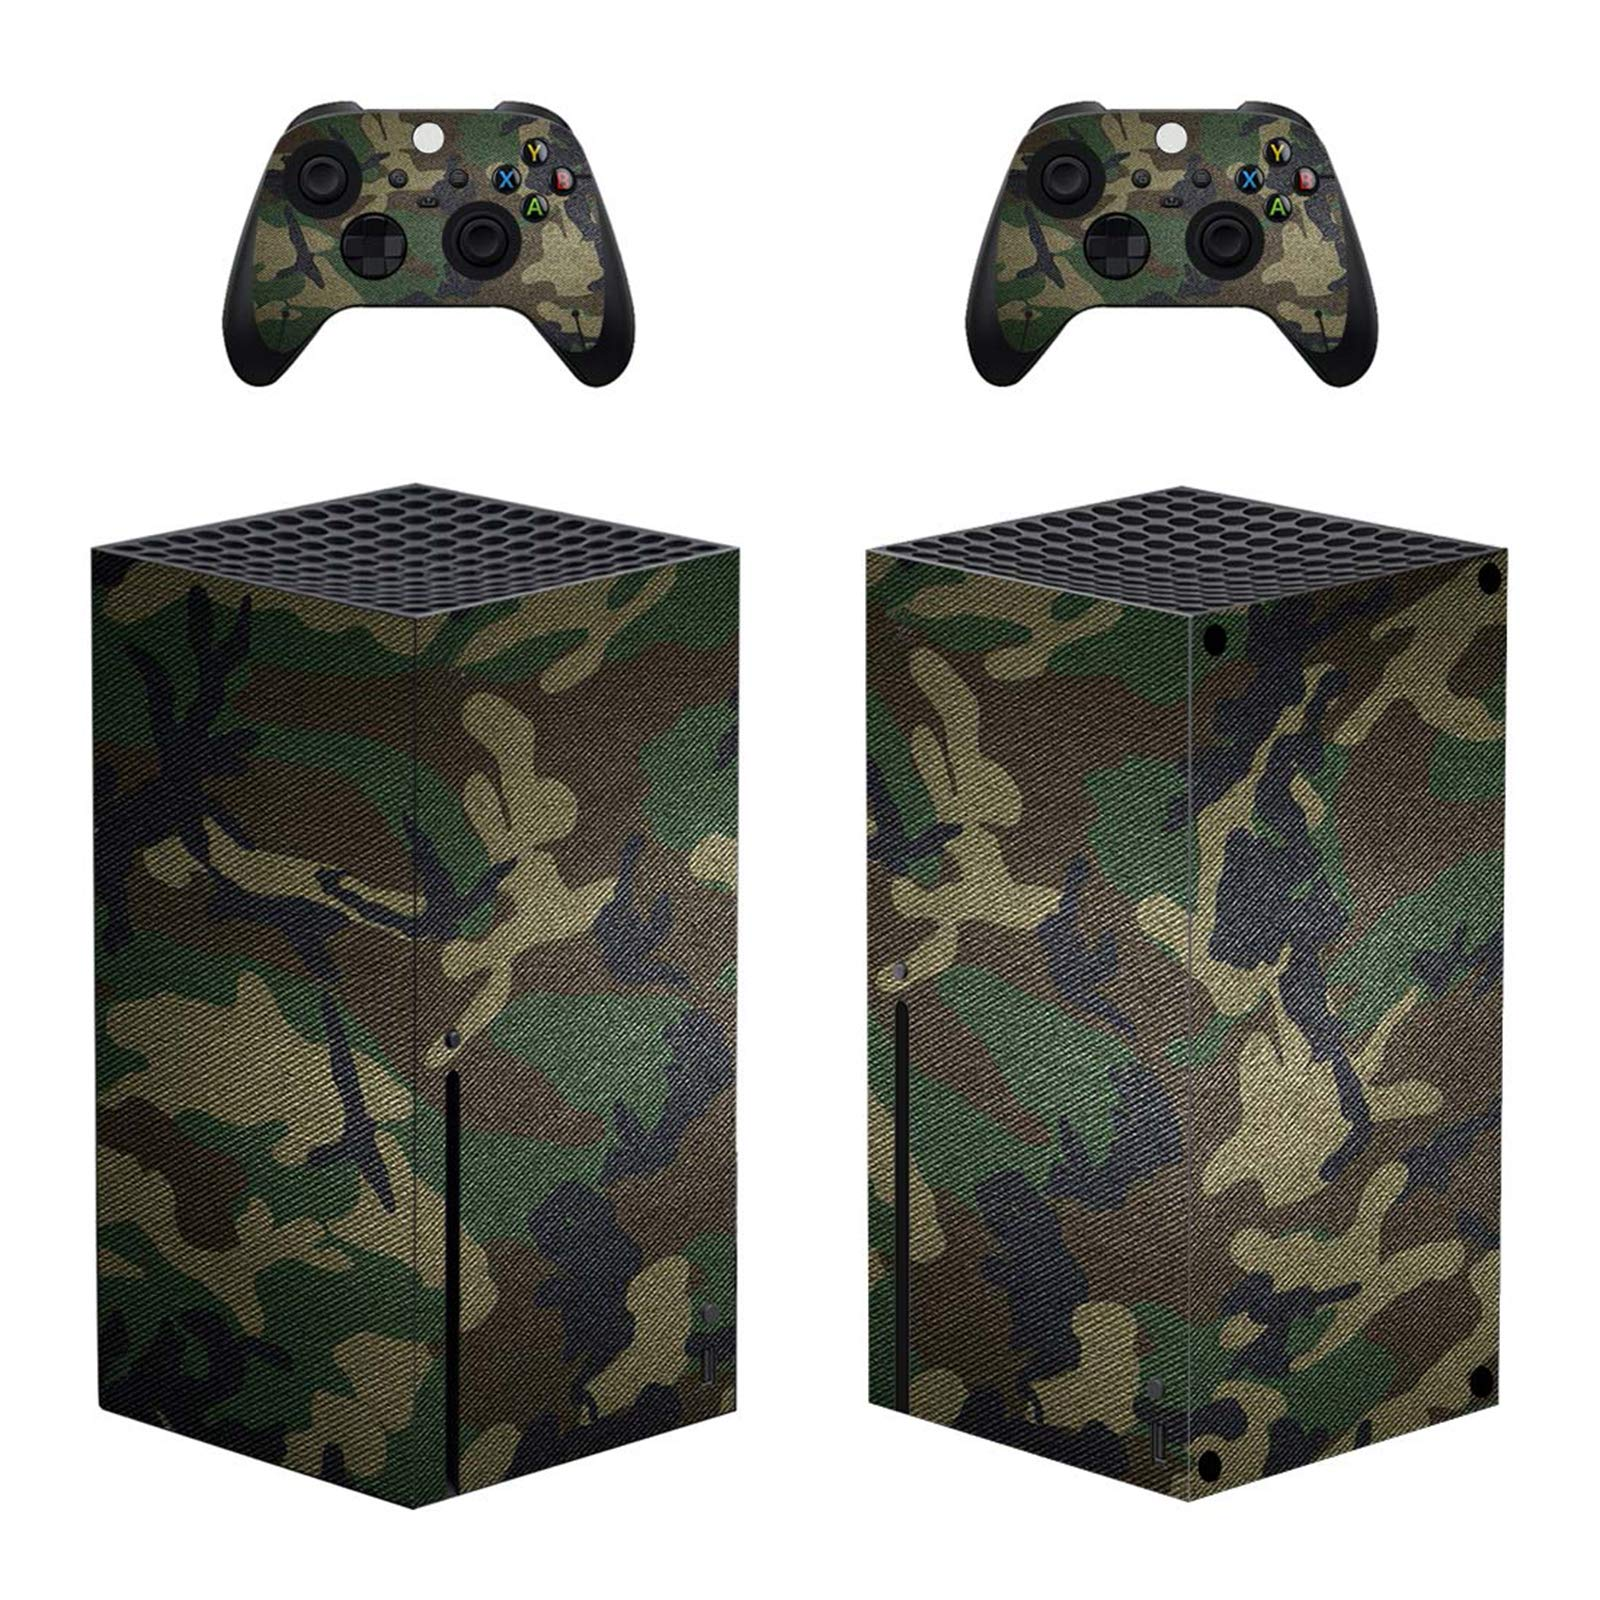 Hihouse Decals Vinyl Skin Sticker for Xbox Series X Camouflage Green